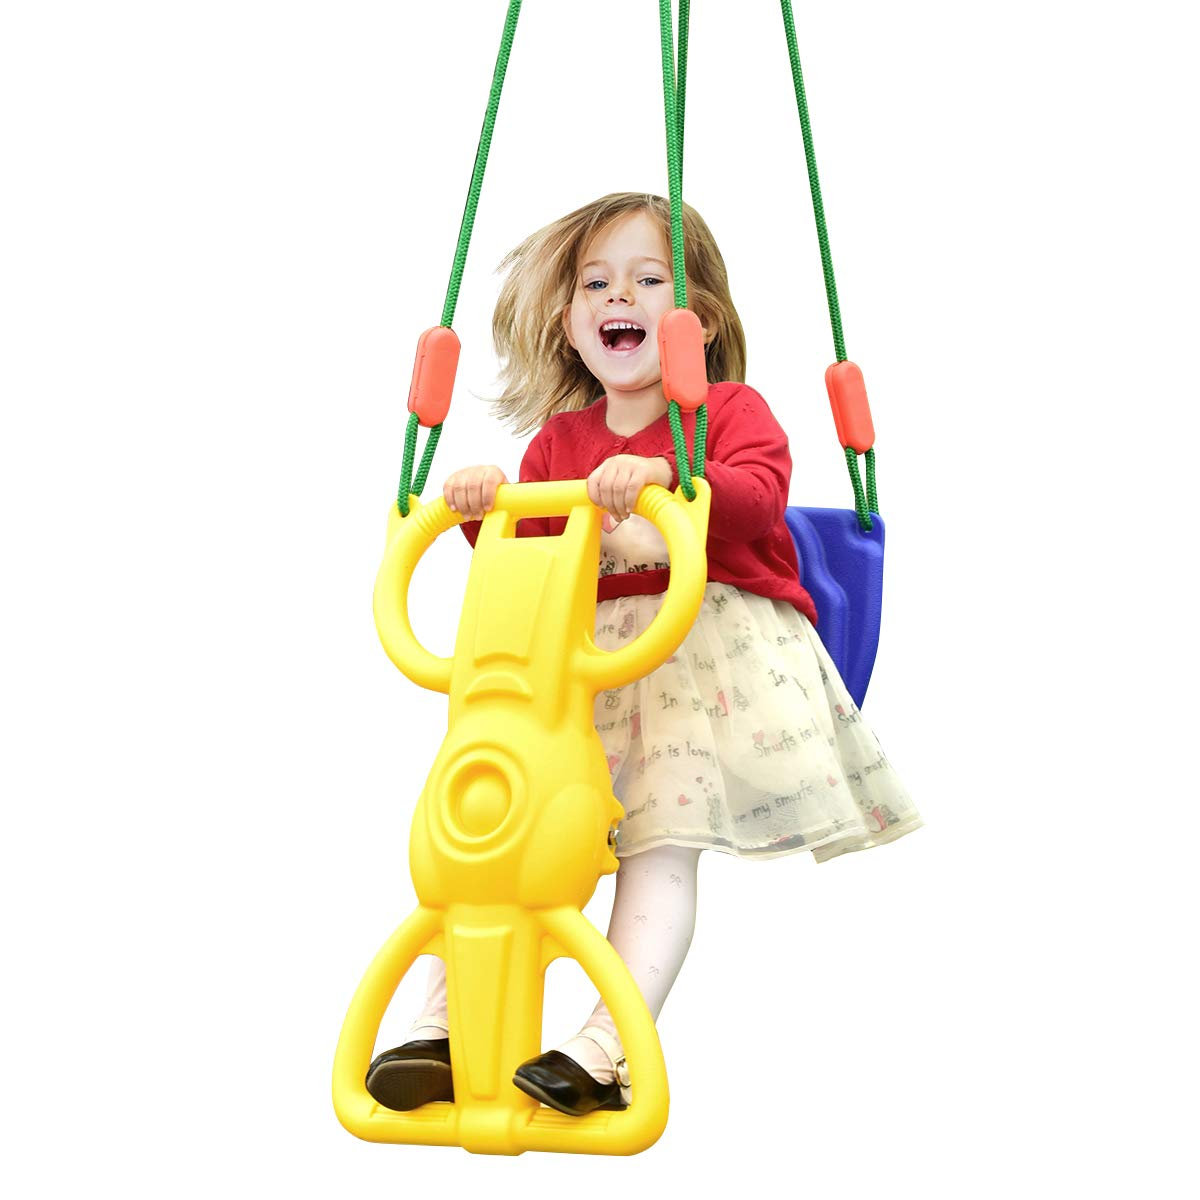 Costzon Rider Swing with Hangers, Wind Rider Glider Swing for Kids Playground (Rider Swing for 1 Kid) by Costzon (Image #1)